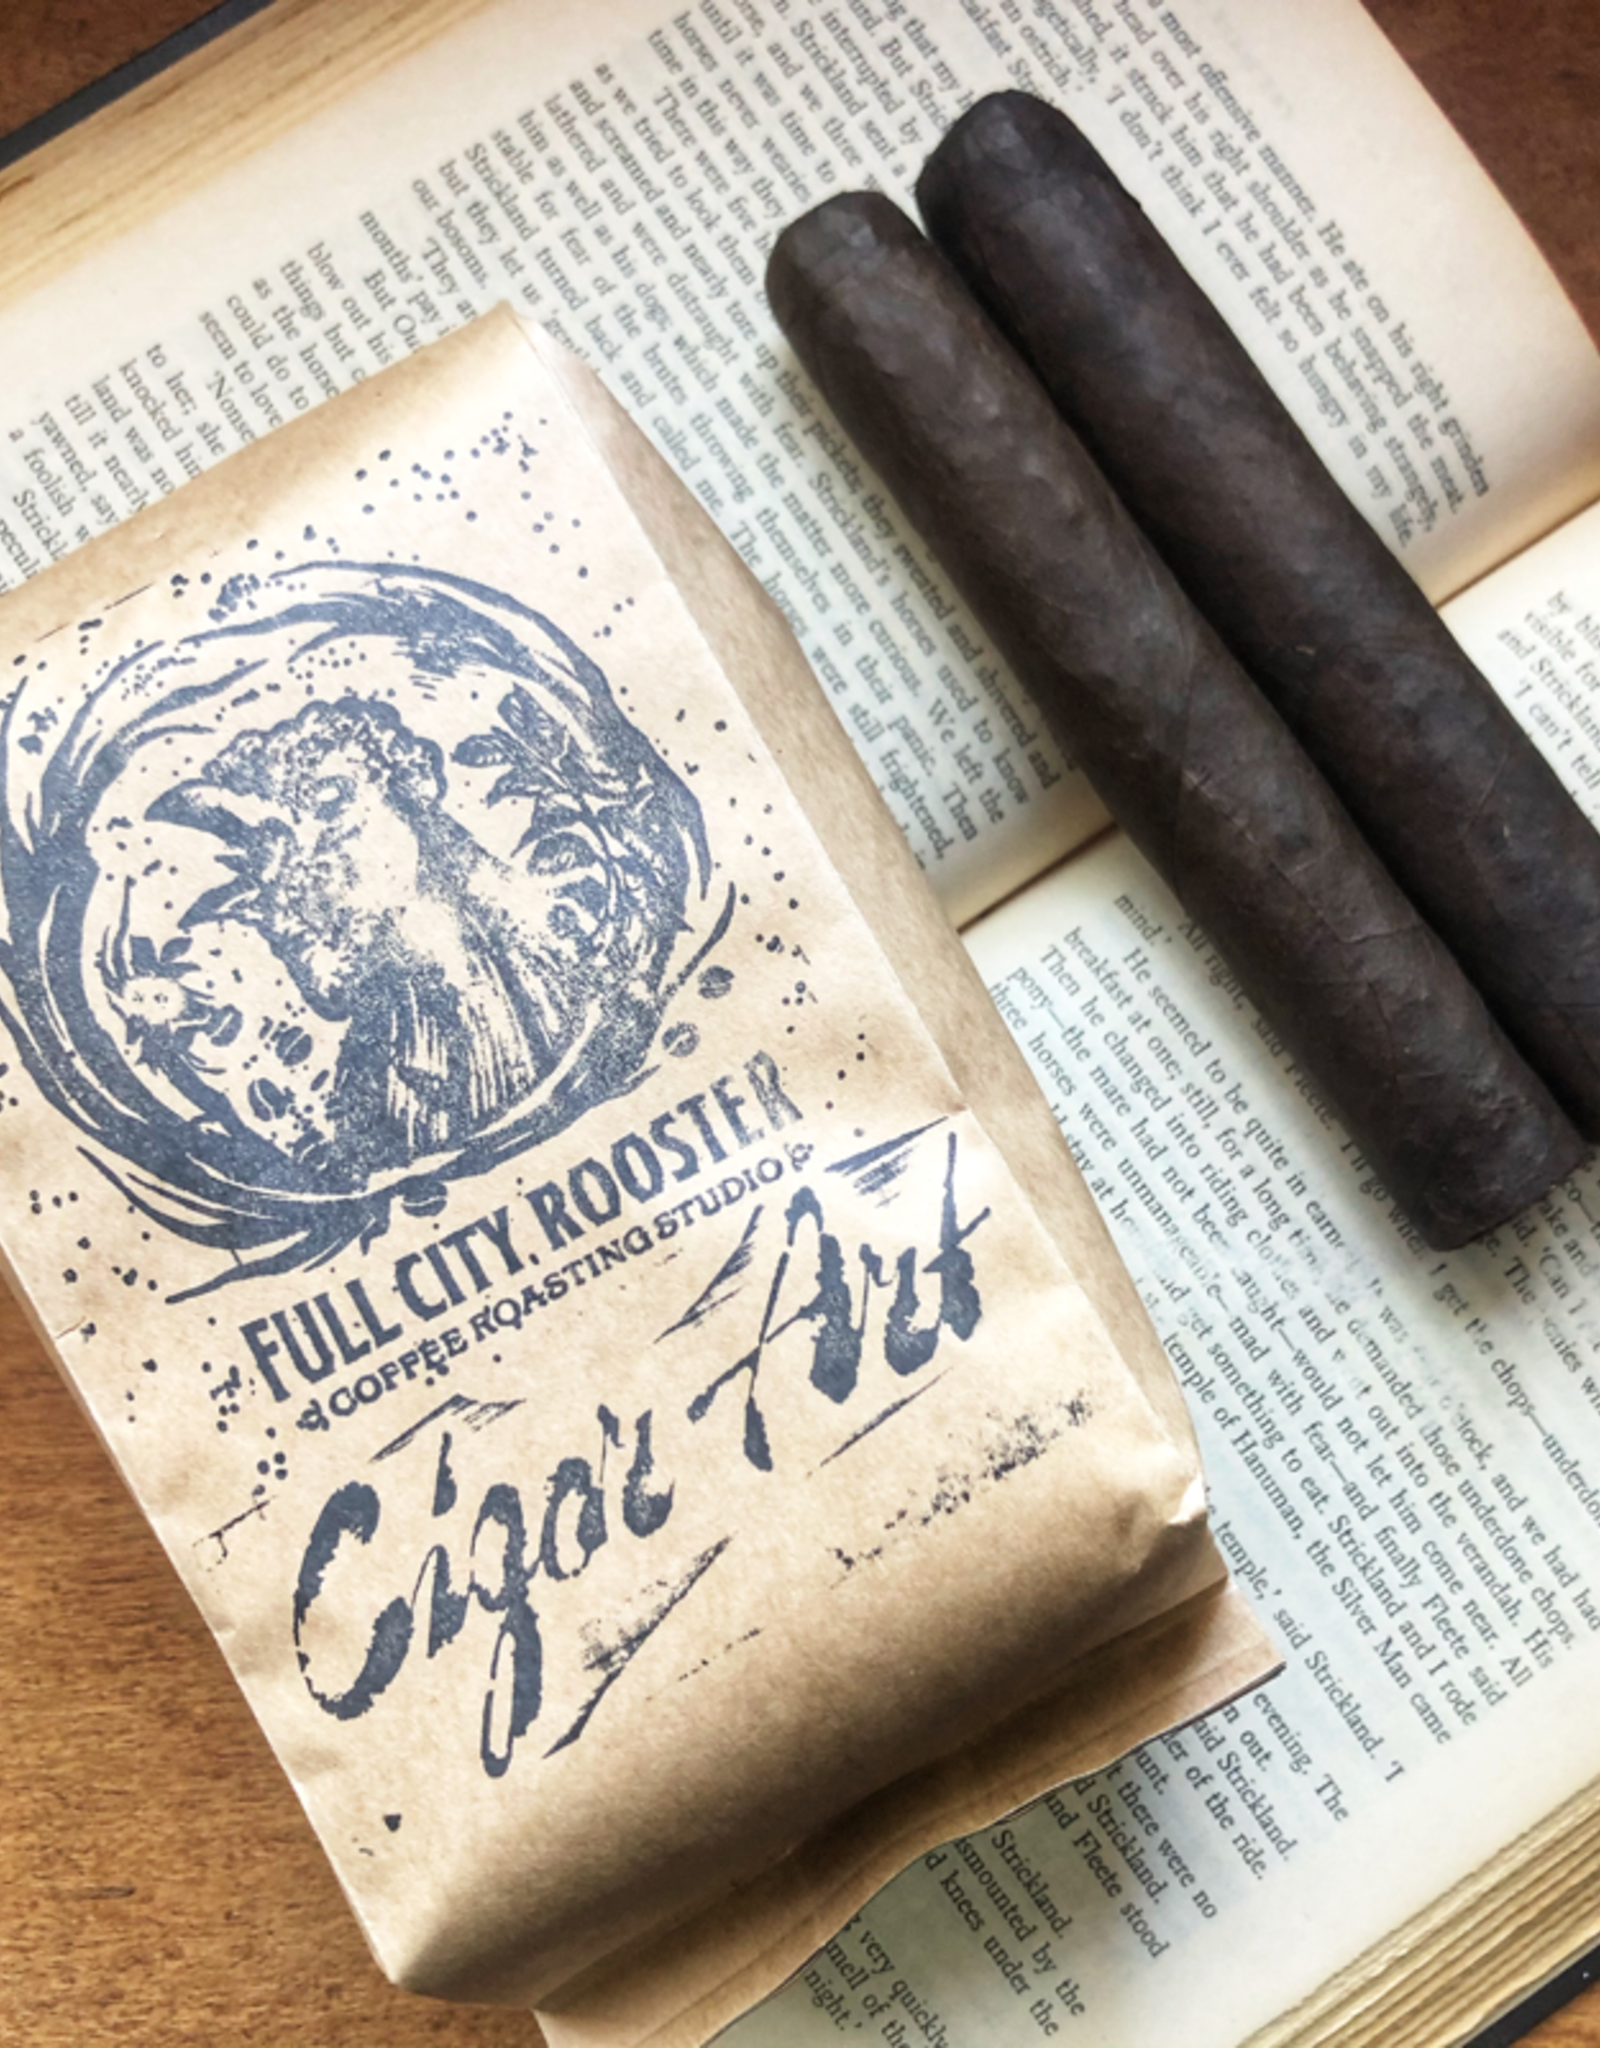 Cigar Art Full City Rooster Coffee: Cigar Art Exclusive 12oz Whole Bean + Two Cliff Jumper Robusto 5 x 50 Singles